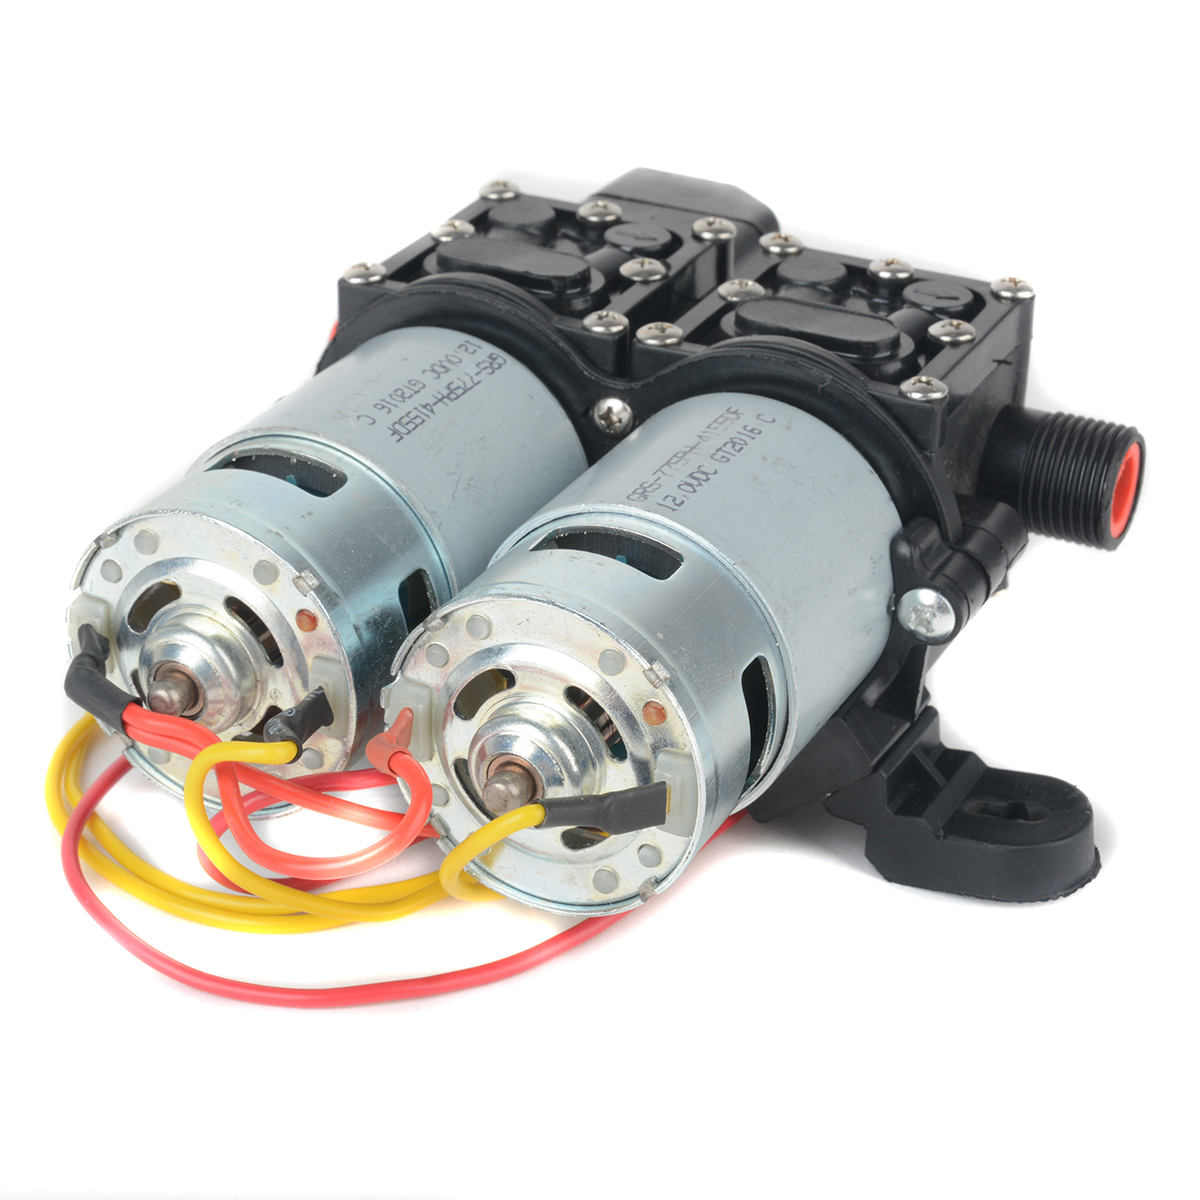 Mayitr dc 12v high pressure diaphragm car water pump Car wash motor pump